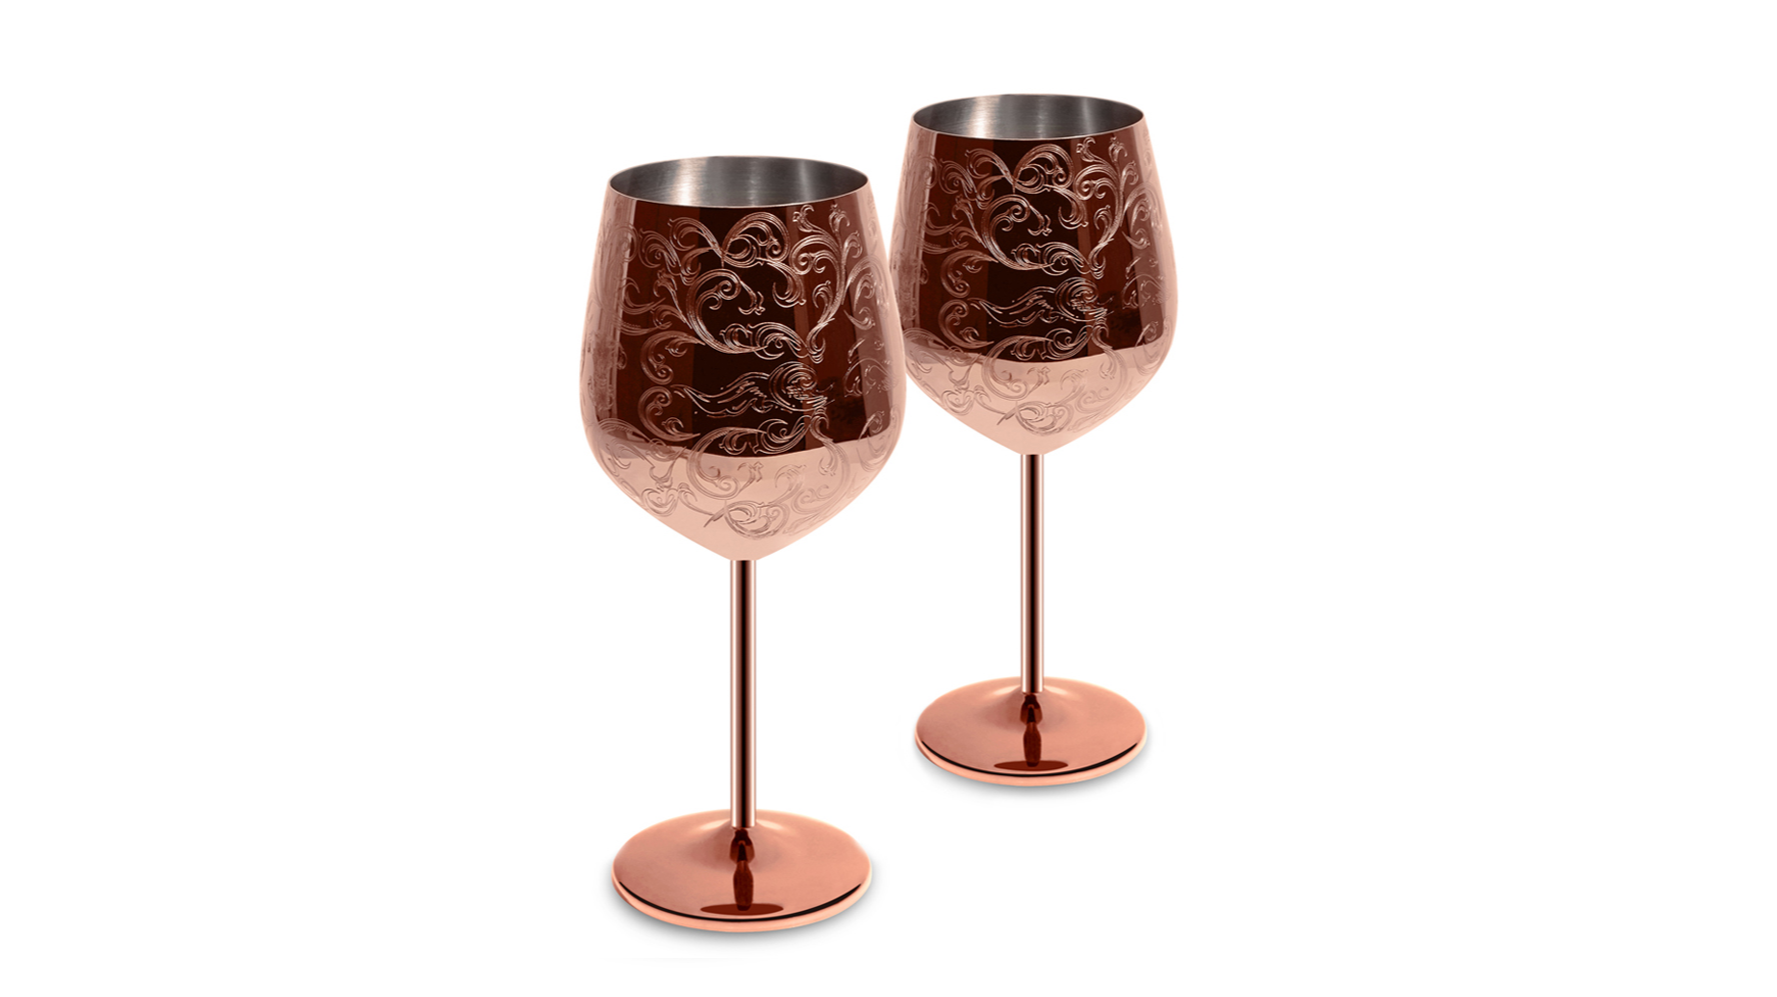 New Copper Plated Etched Stainless Steel Wine Goblet Wine Glasses Set of 2